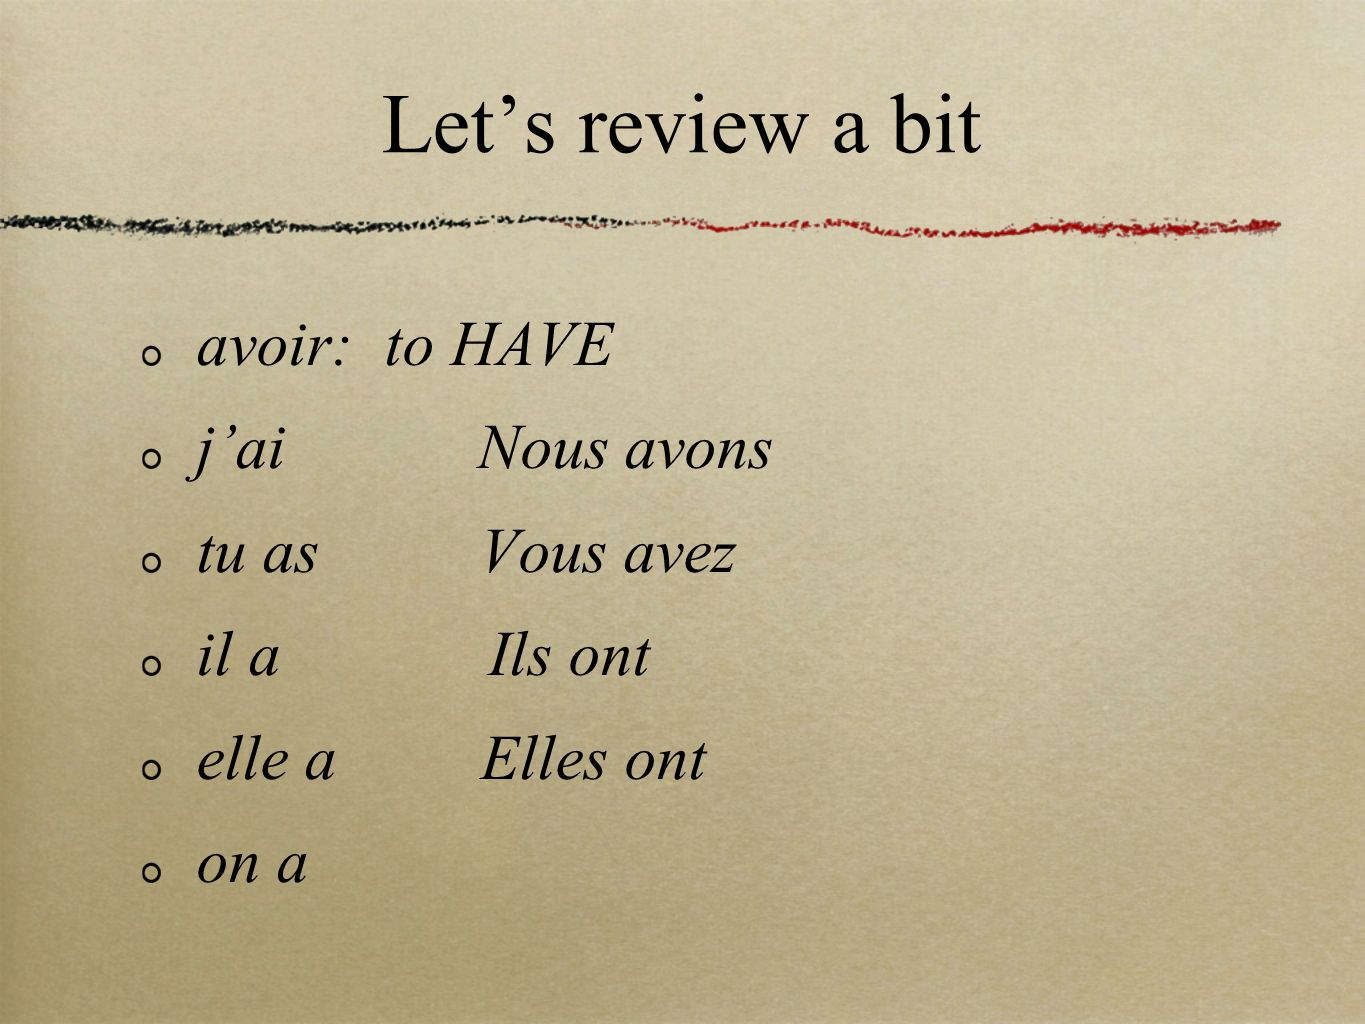 She wants to: